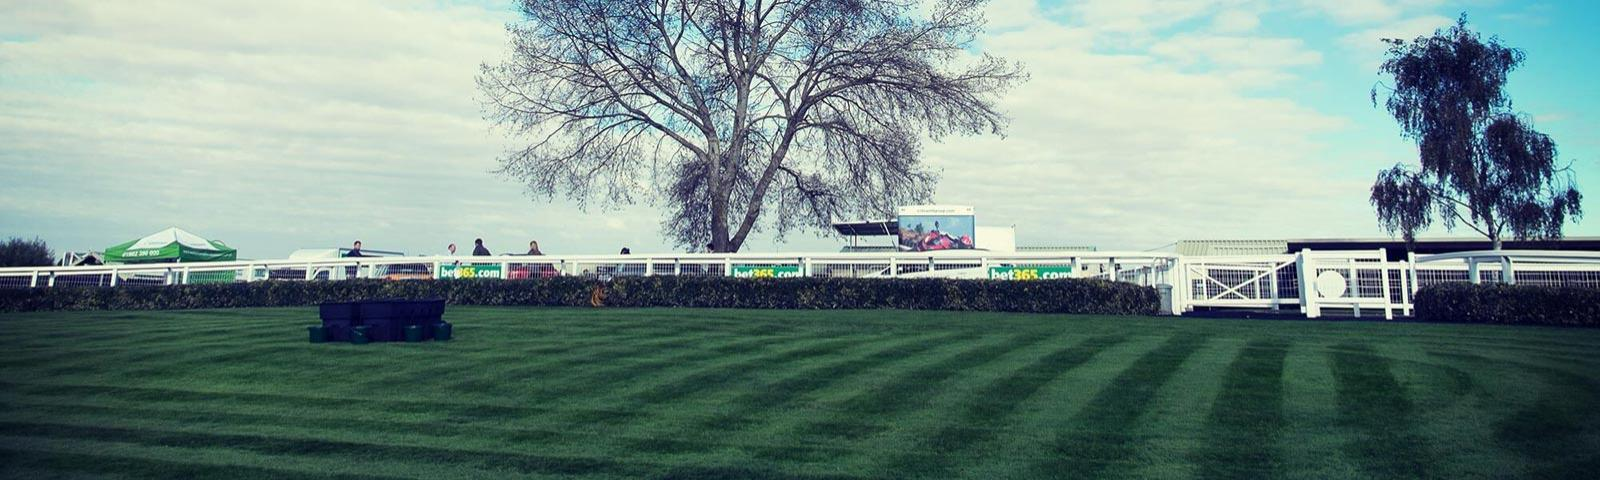 Parade ring at Hereford Racecourse.